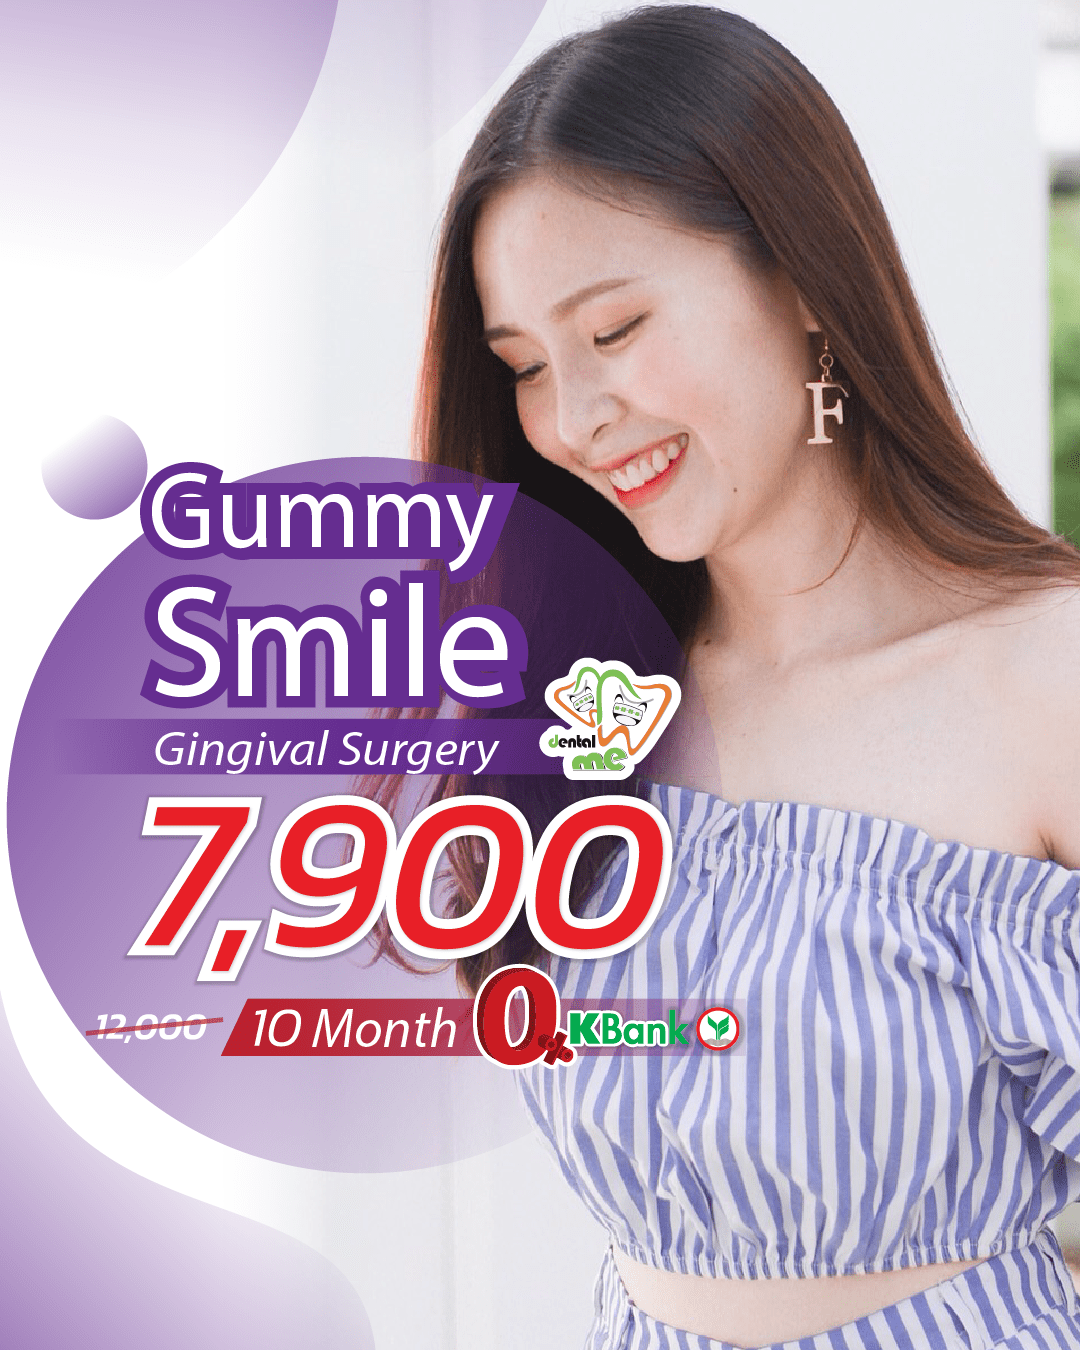 Gingival-Surgery-Gummy-Smile.png